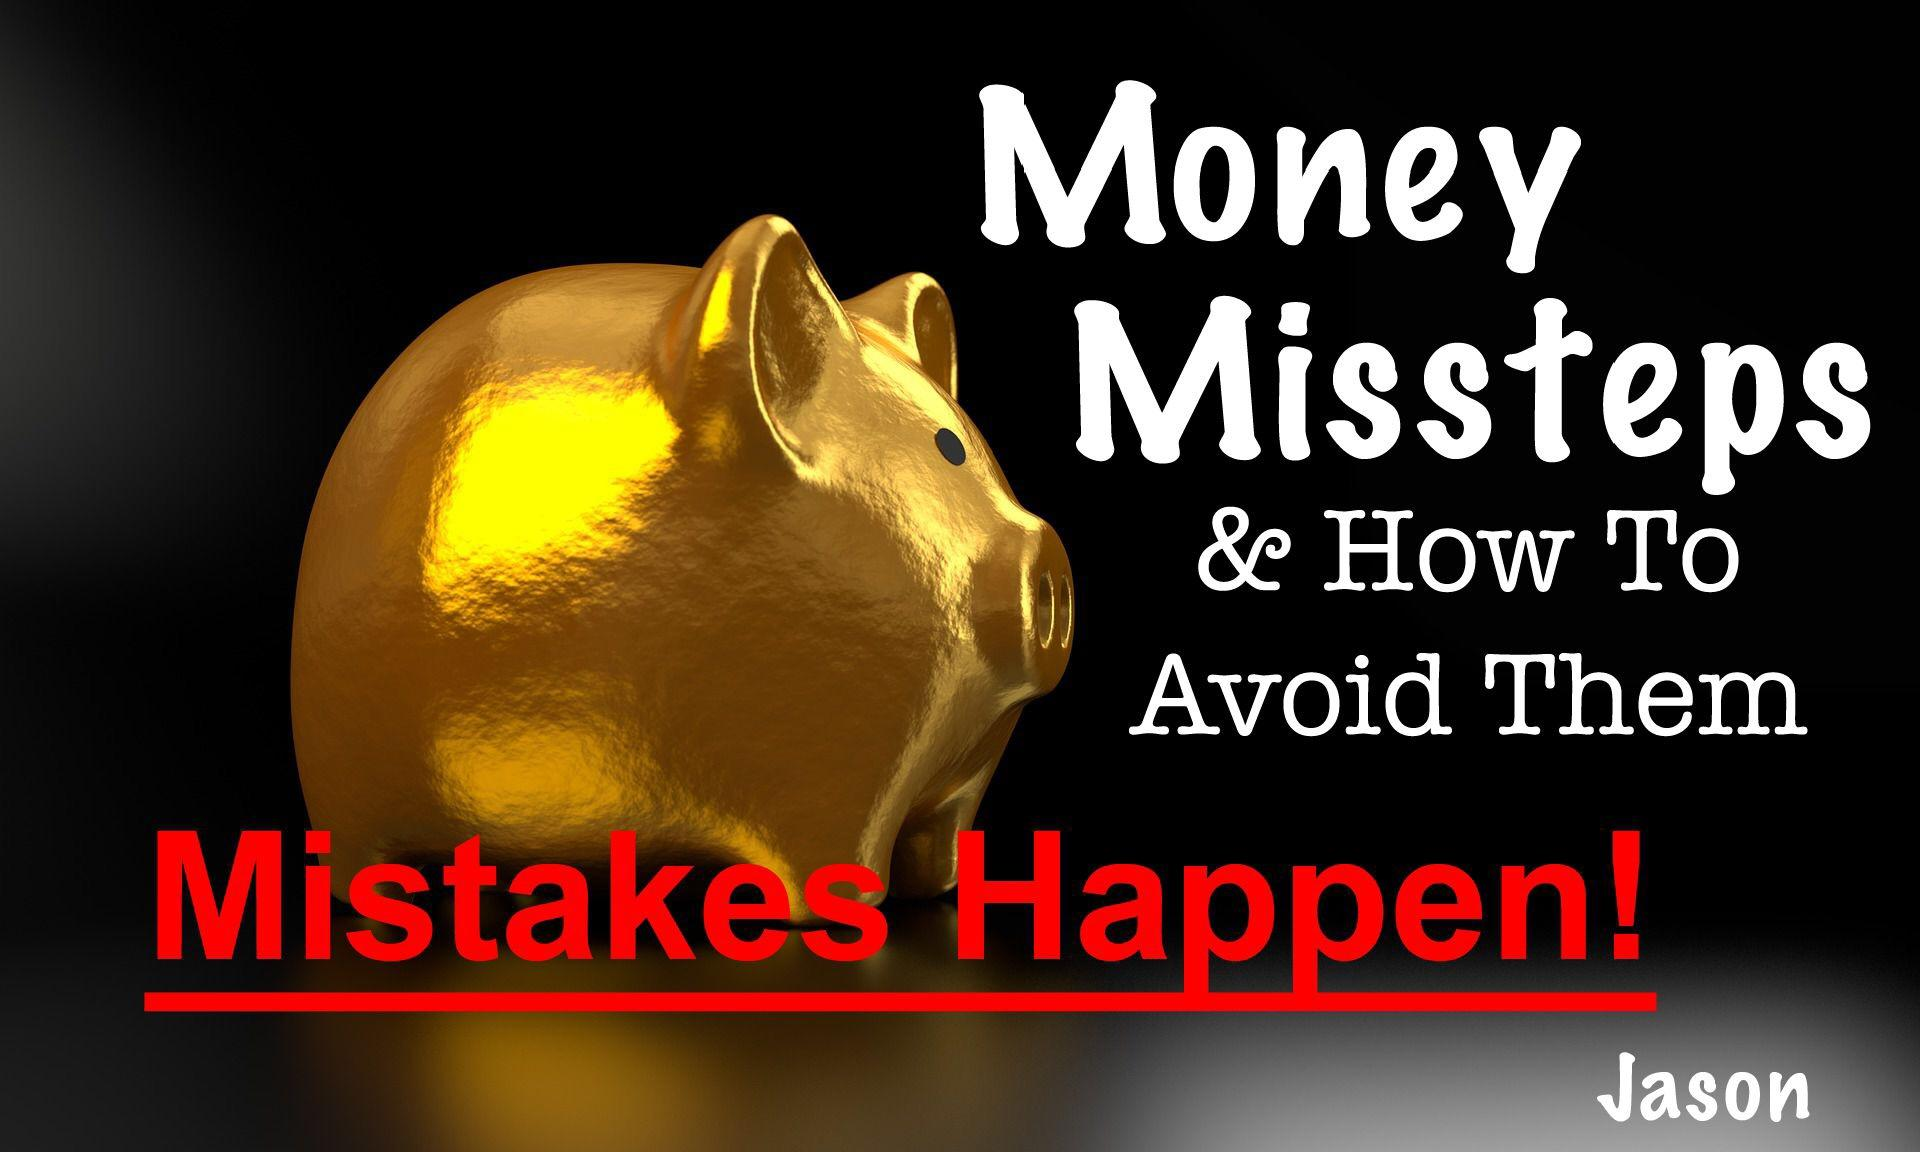 Money Missteps: Mistakes Happen Thumbnail